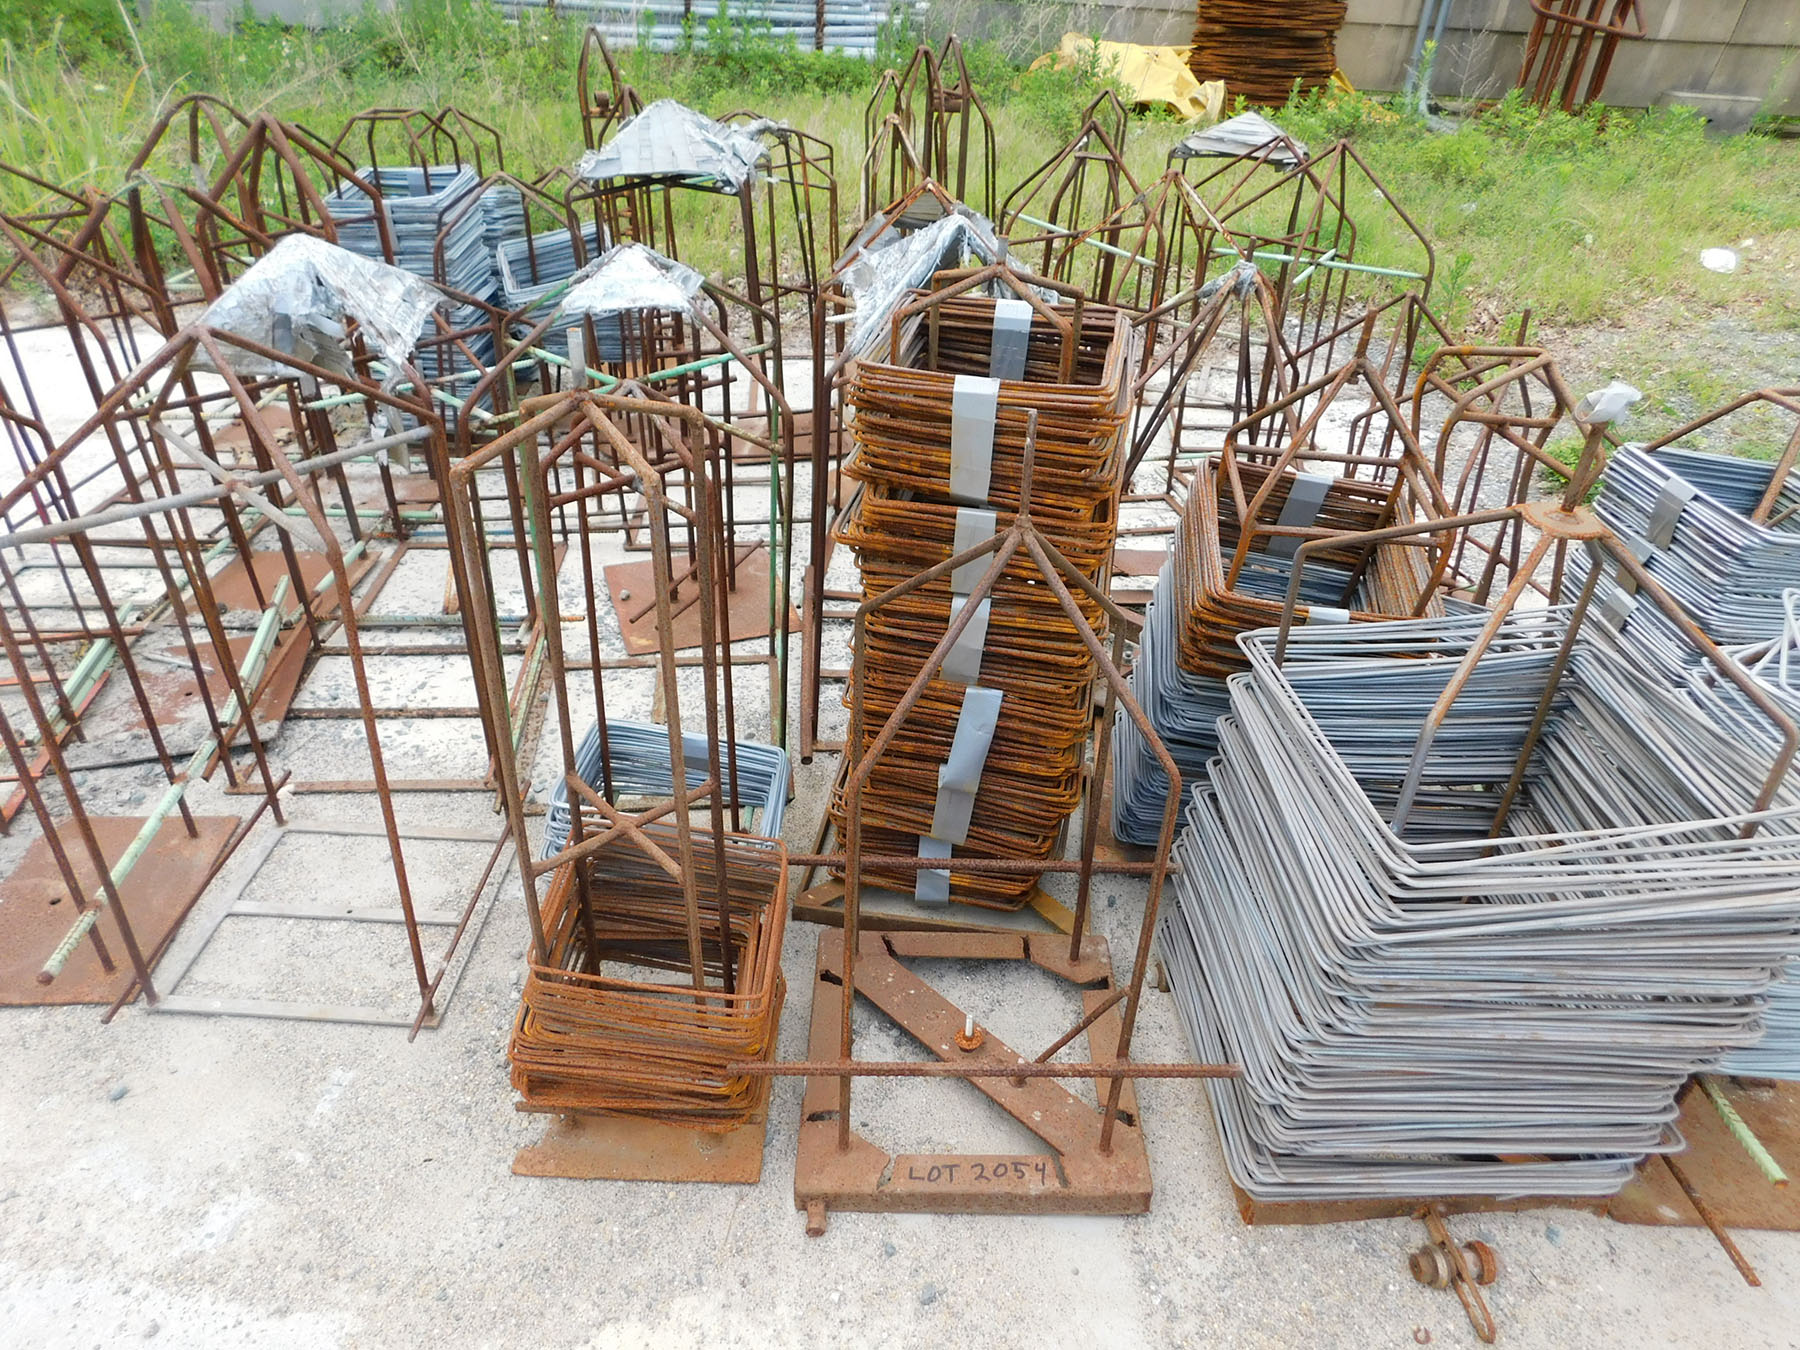 Lot 2054 - LOT OF MISC. WIRE & STEEL ALONG RETAINER WALL)